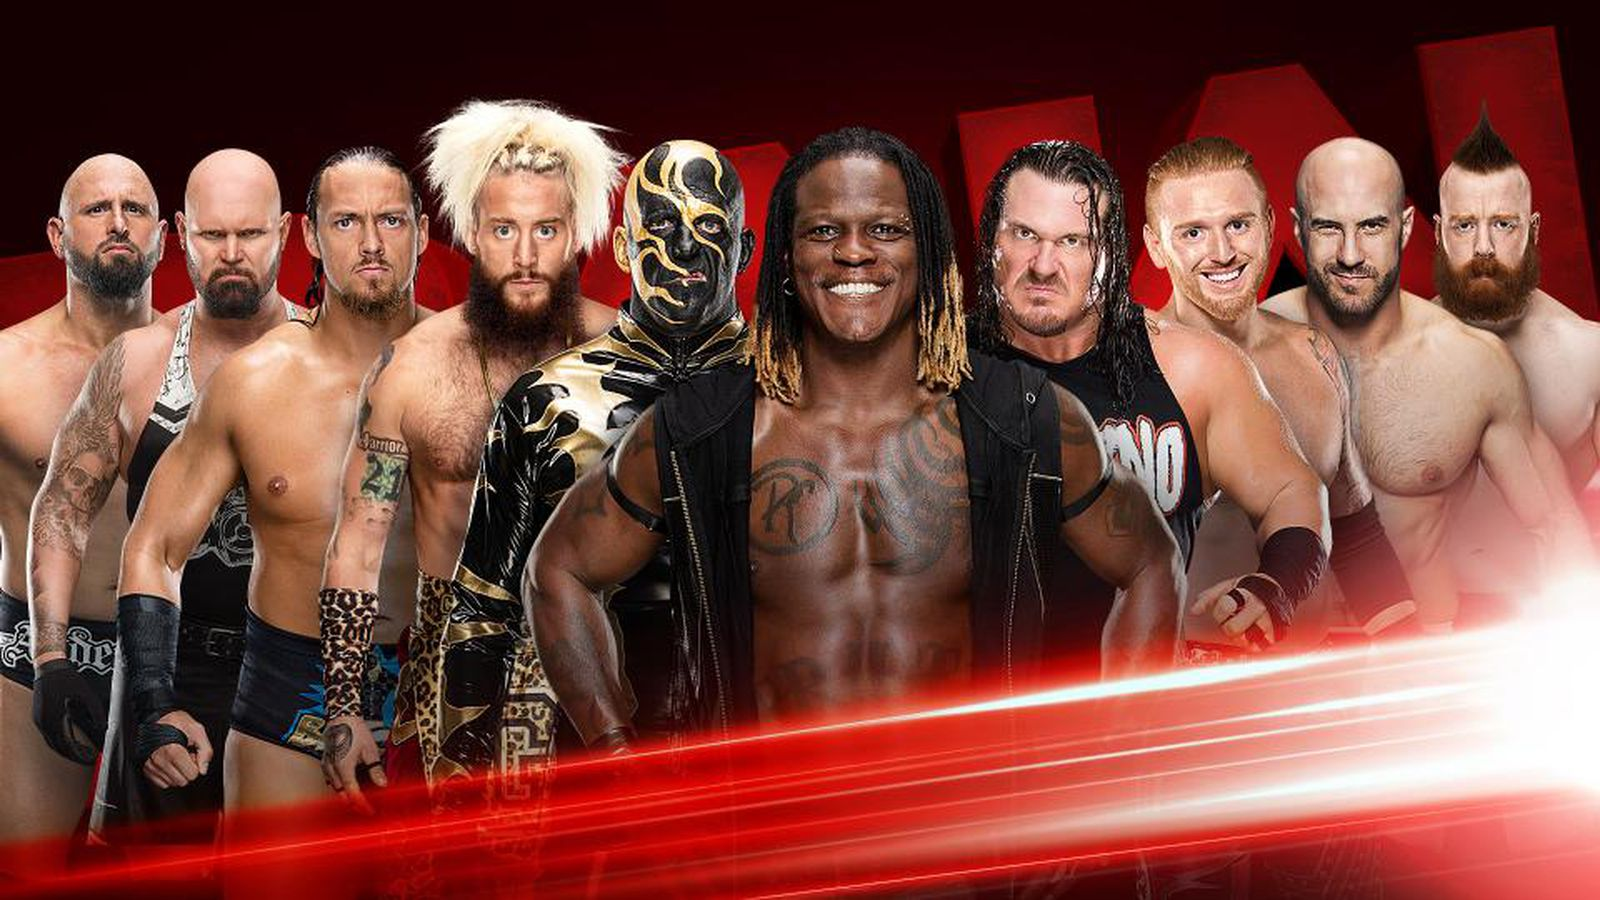 Wwe raw results live blog may 8 2017 tag team turmoil - Monday night raw images ...